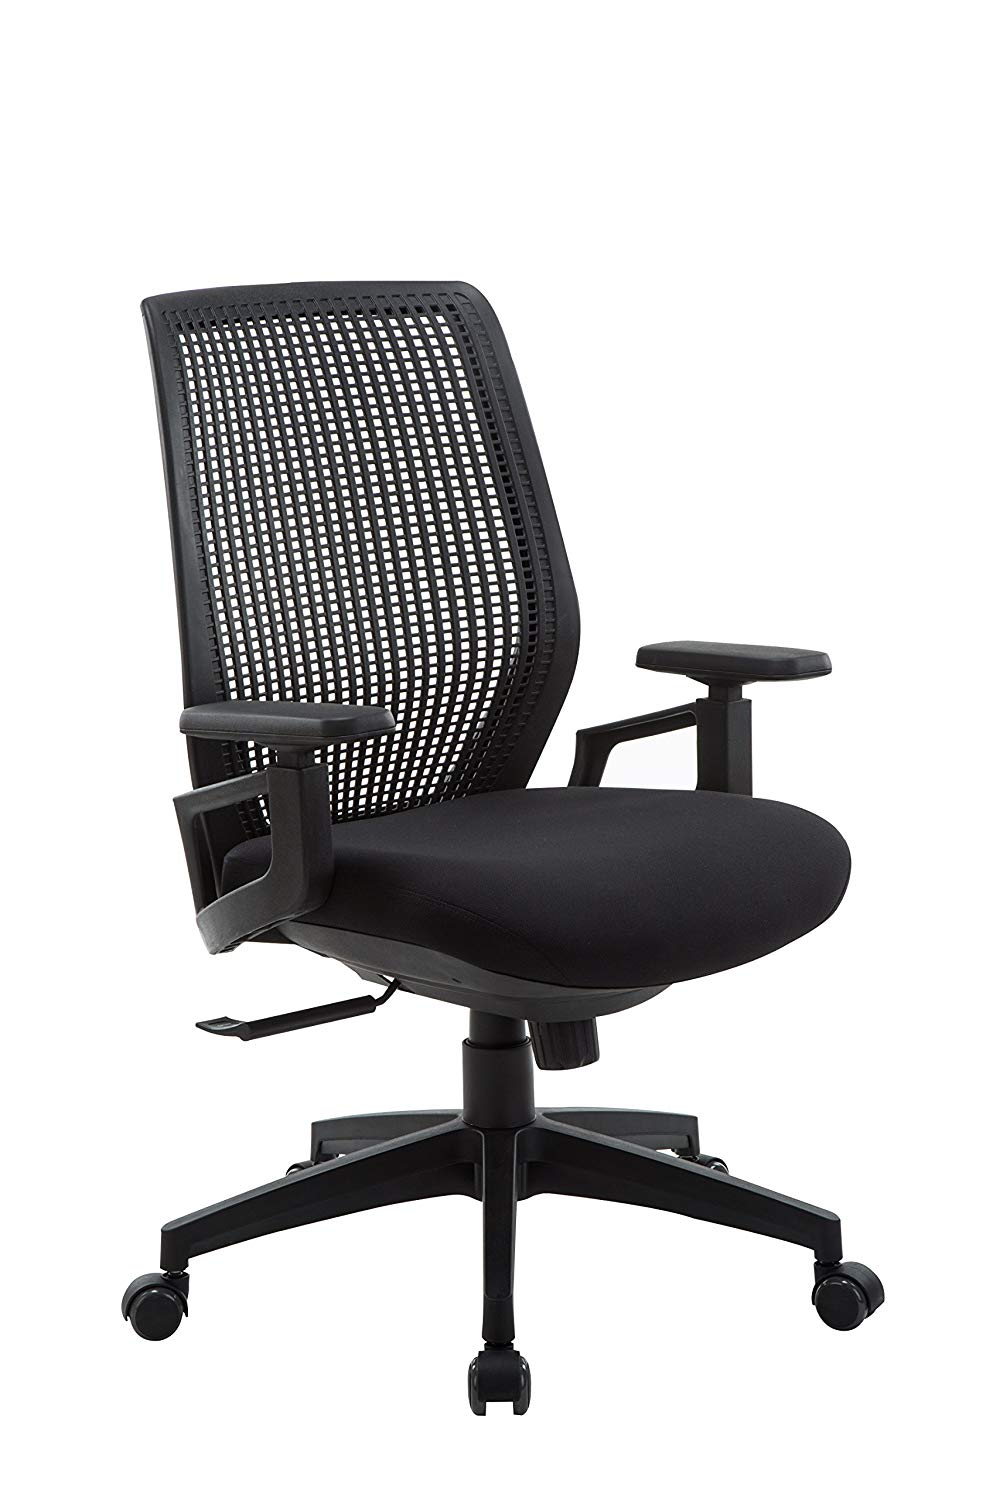 Office Factor Ergonomic Office Chair, High Back Mesh Computer Chair, Fully Adjustable Polypropylene Ventilated Mesh Back Executive Chair for Home & Office, Breathable Office Task Chair